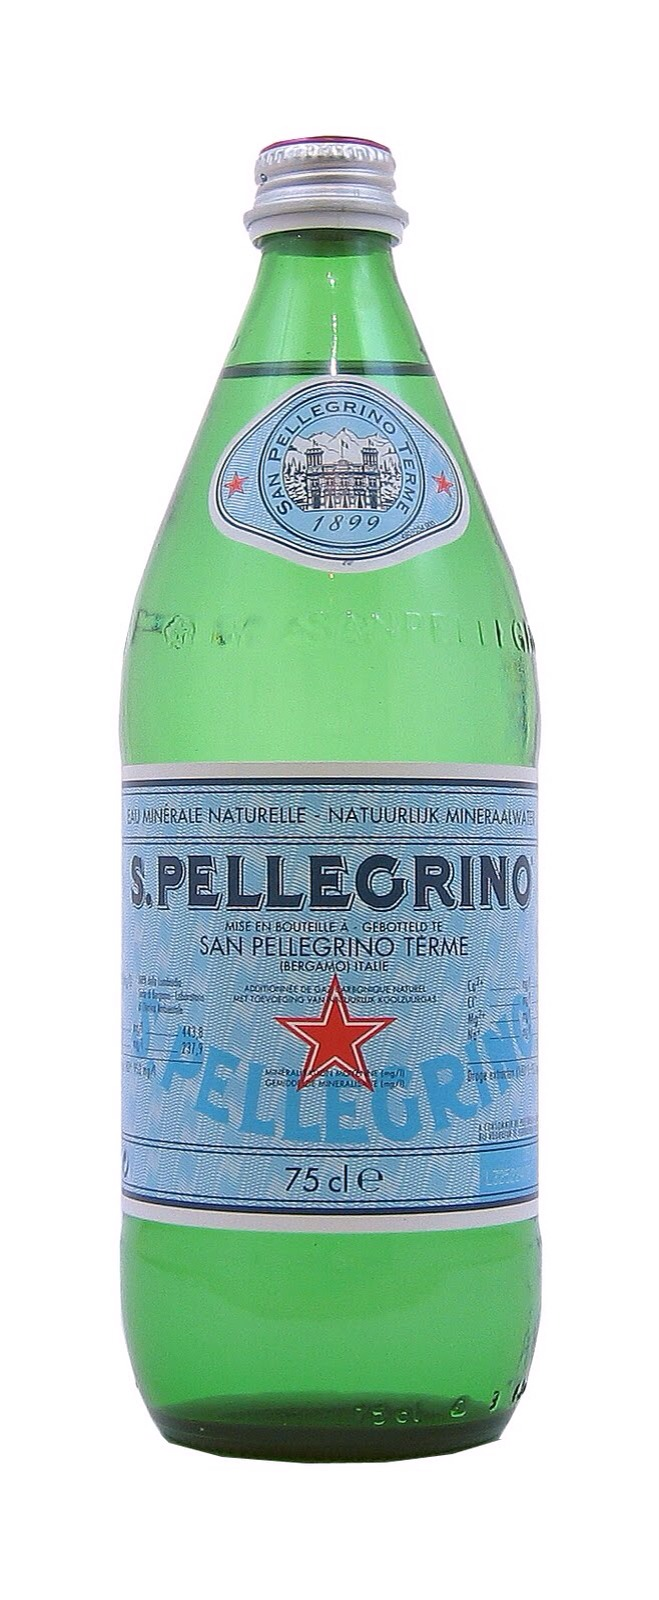 Add in some sparkling water and you're set!